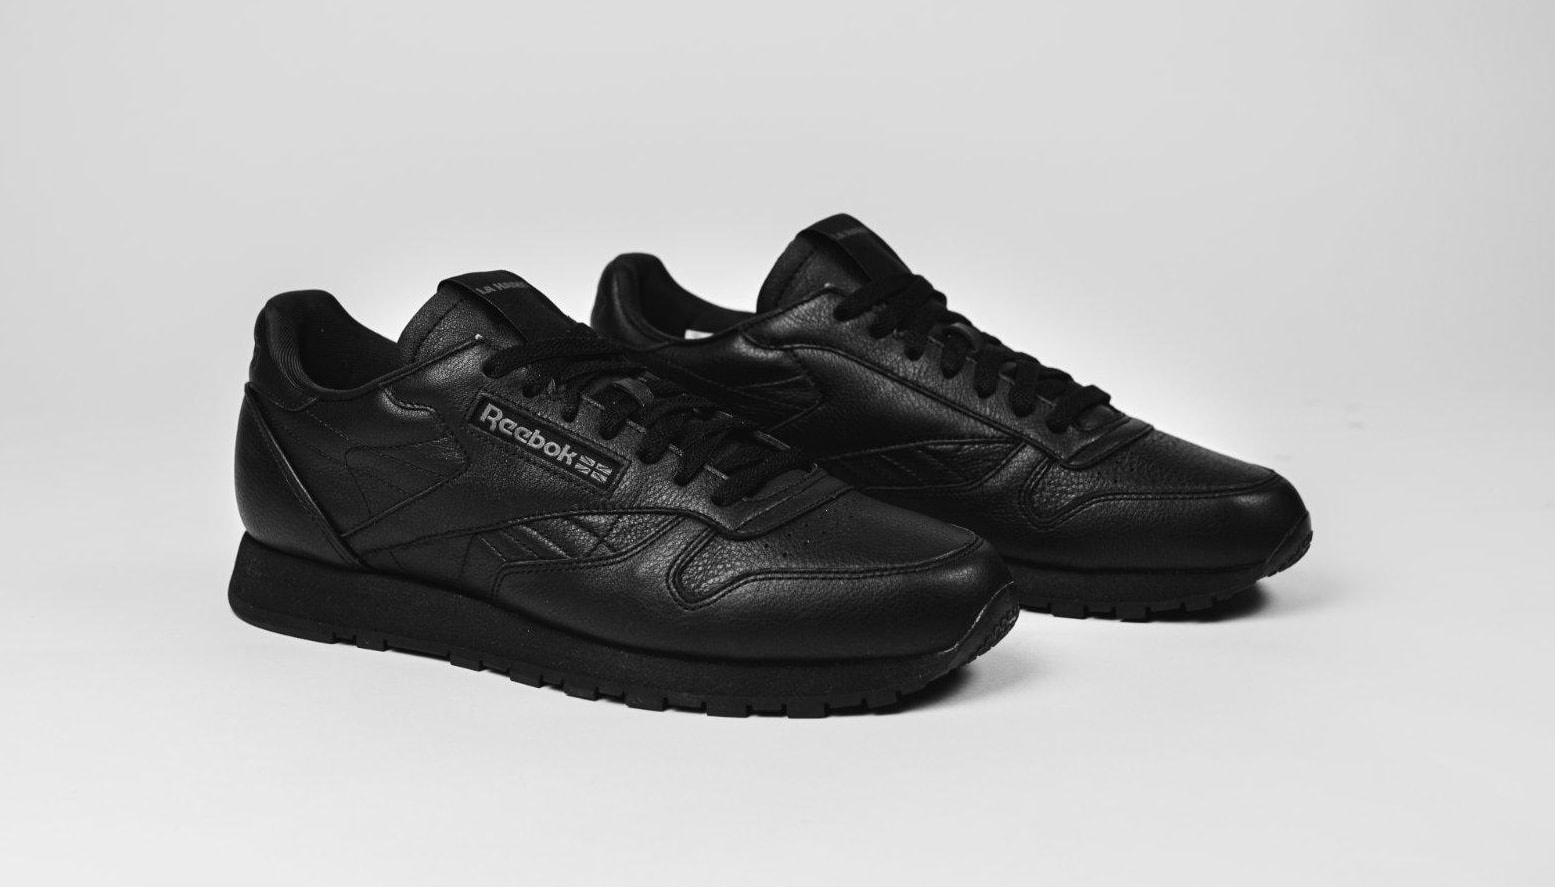 La Haine x Reebok Classic Leather OG black